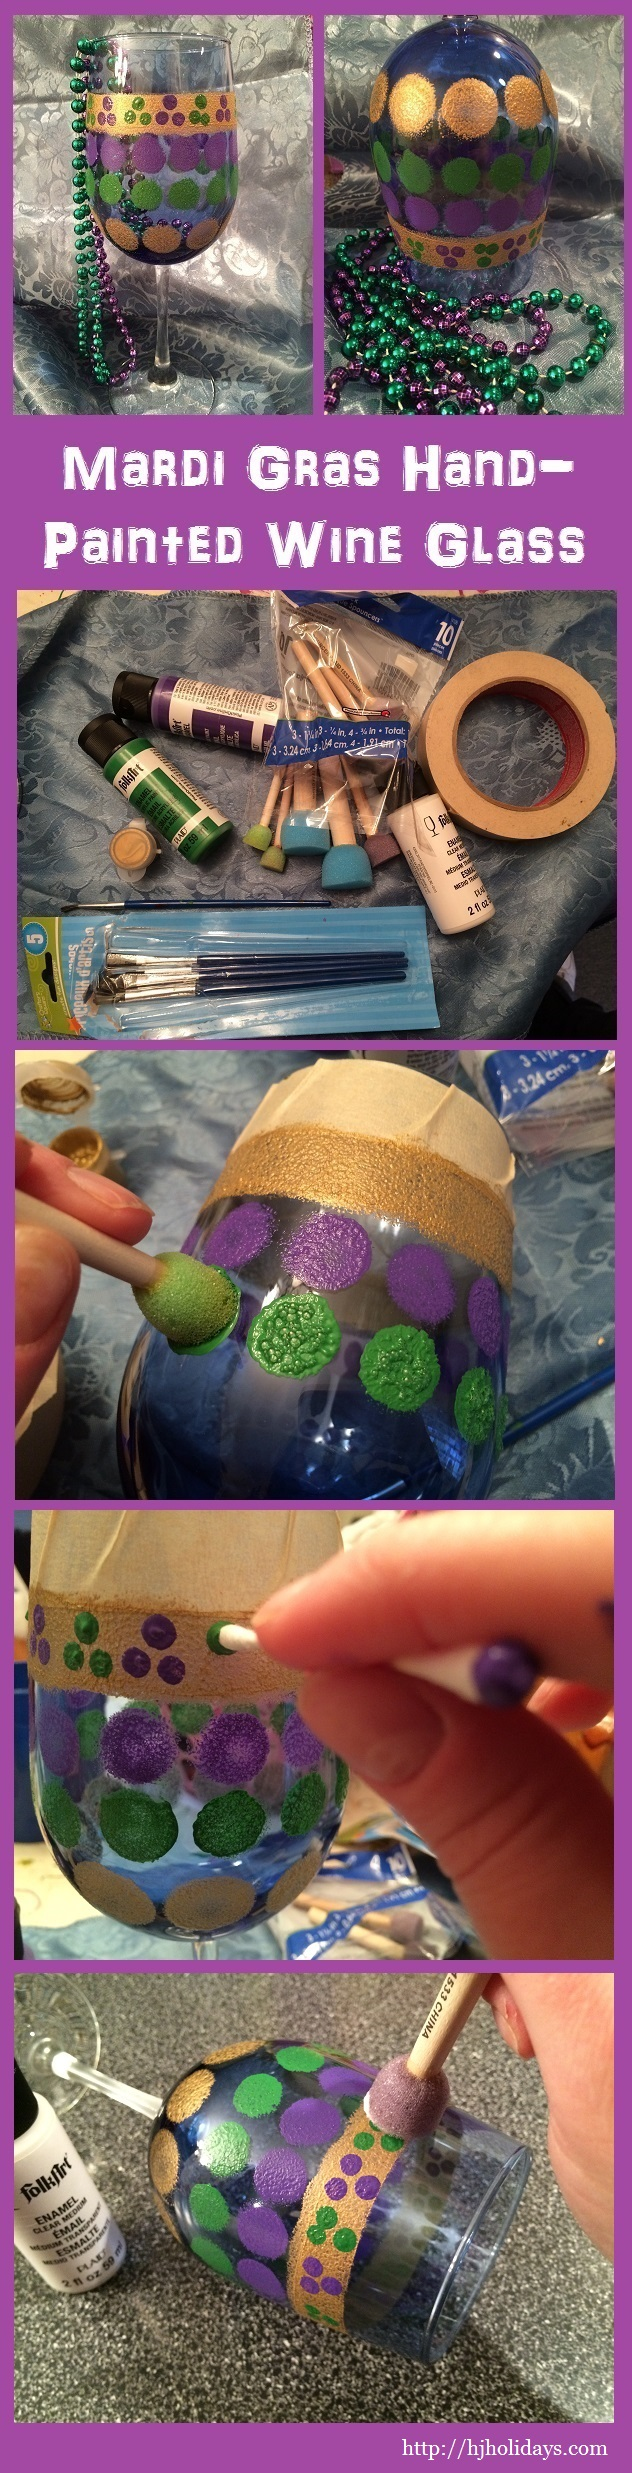 Mardi Gras Hand Painted Wine Glass Tutorial